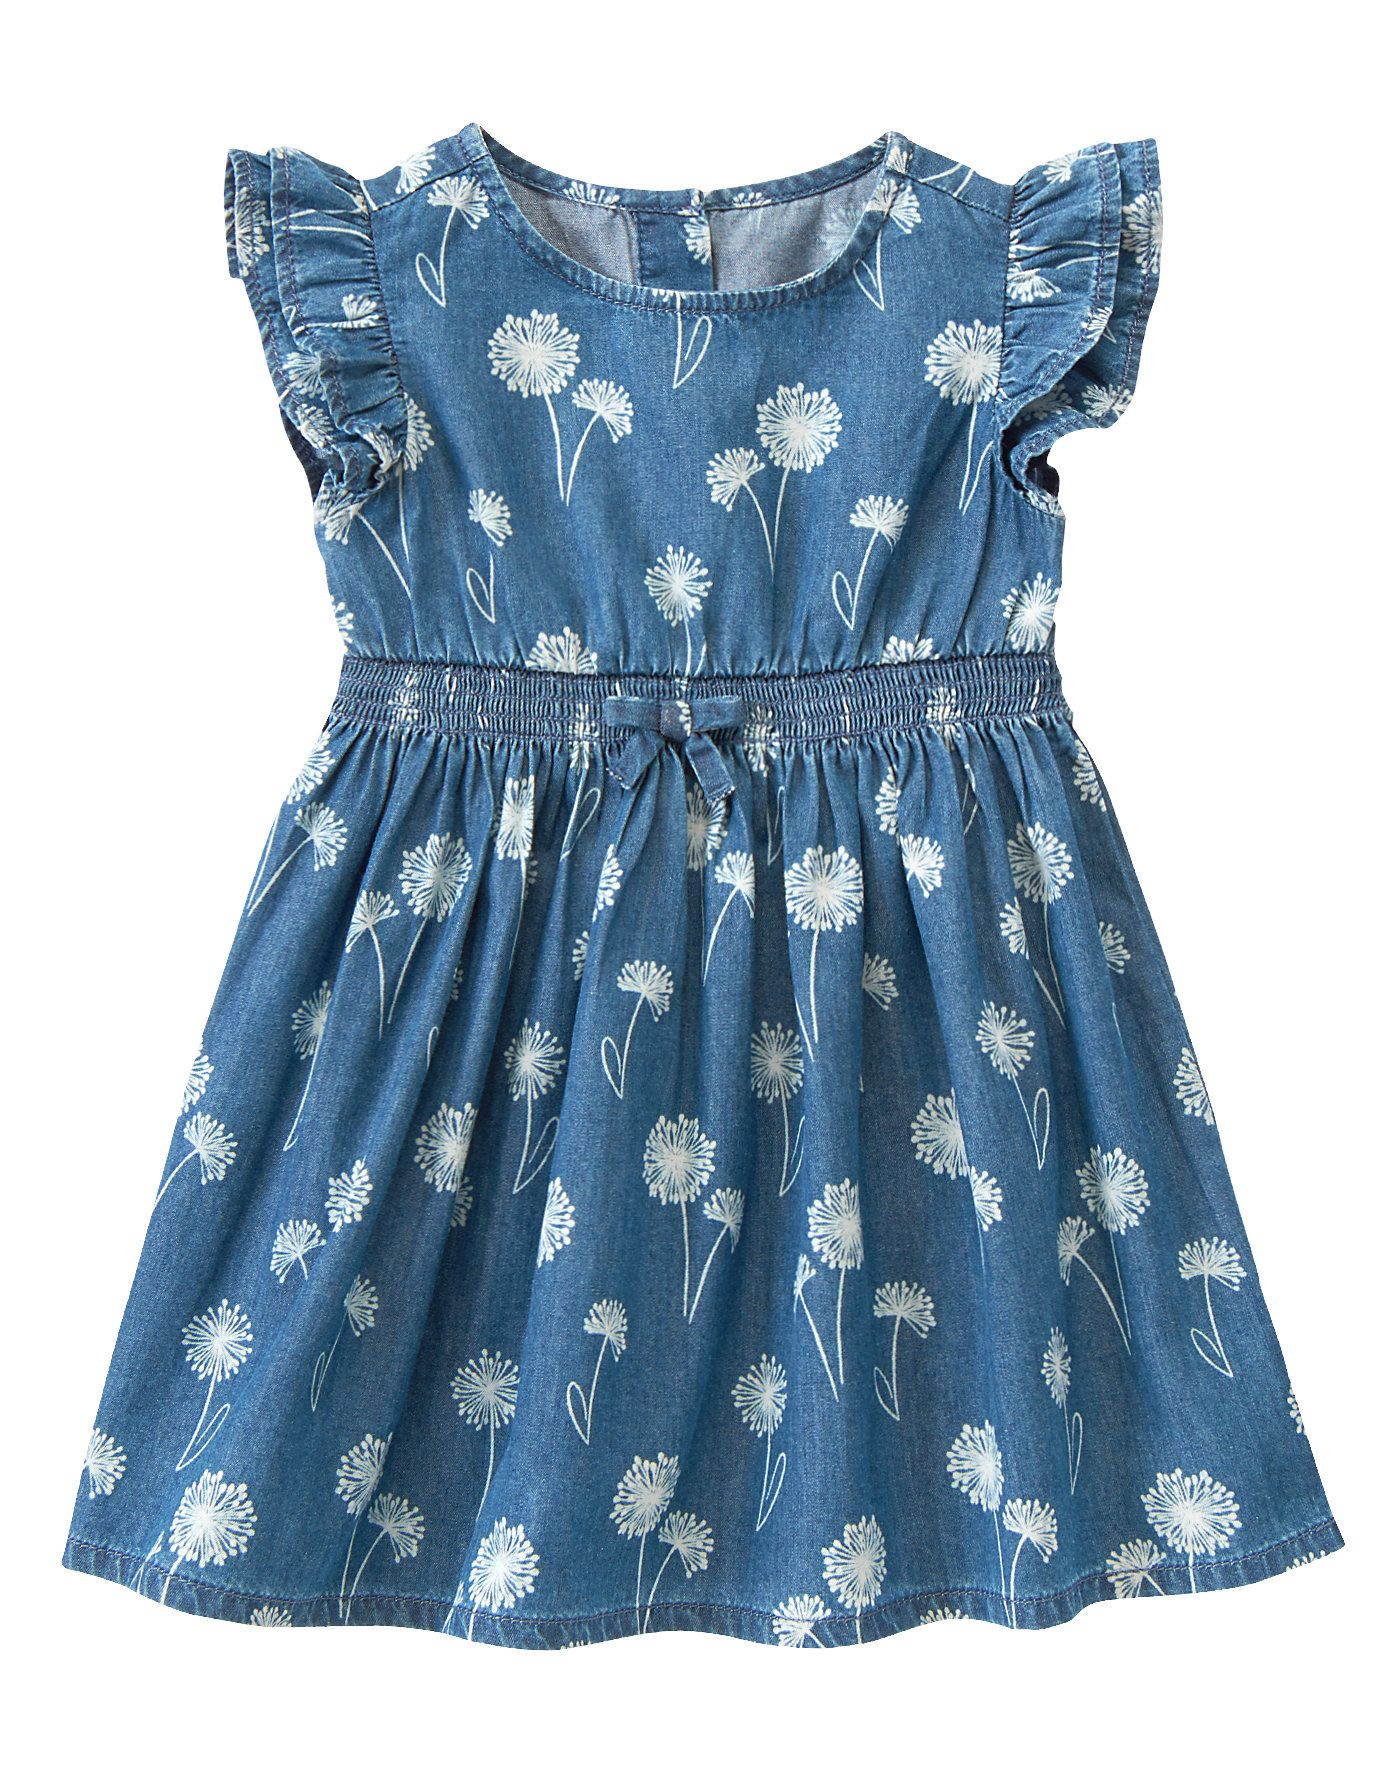 NWT Gymboree Striped Chambray Dress Parisian Afternoon 12 18 24M 3T 4T 5T Girl